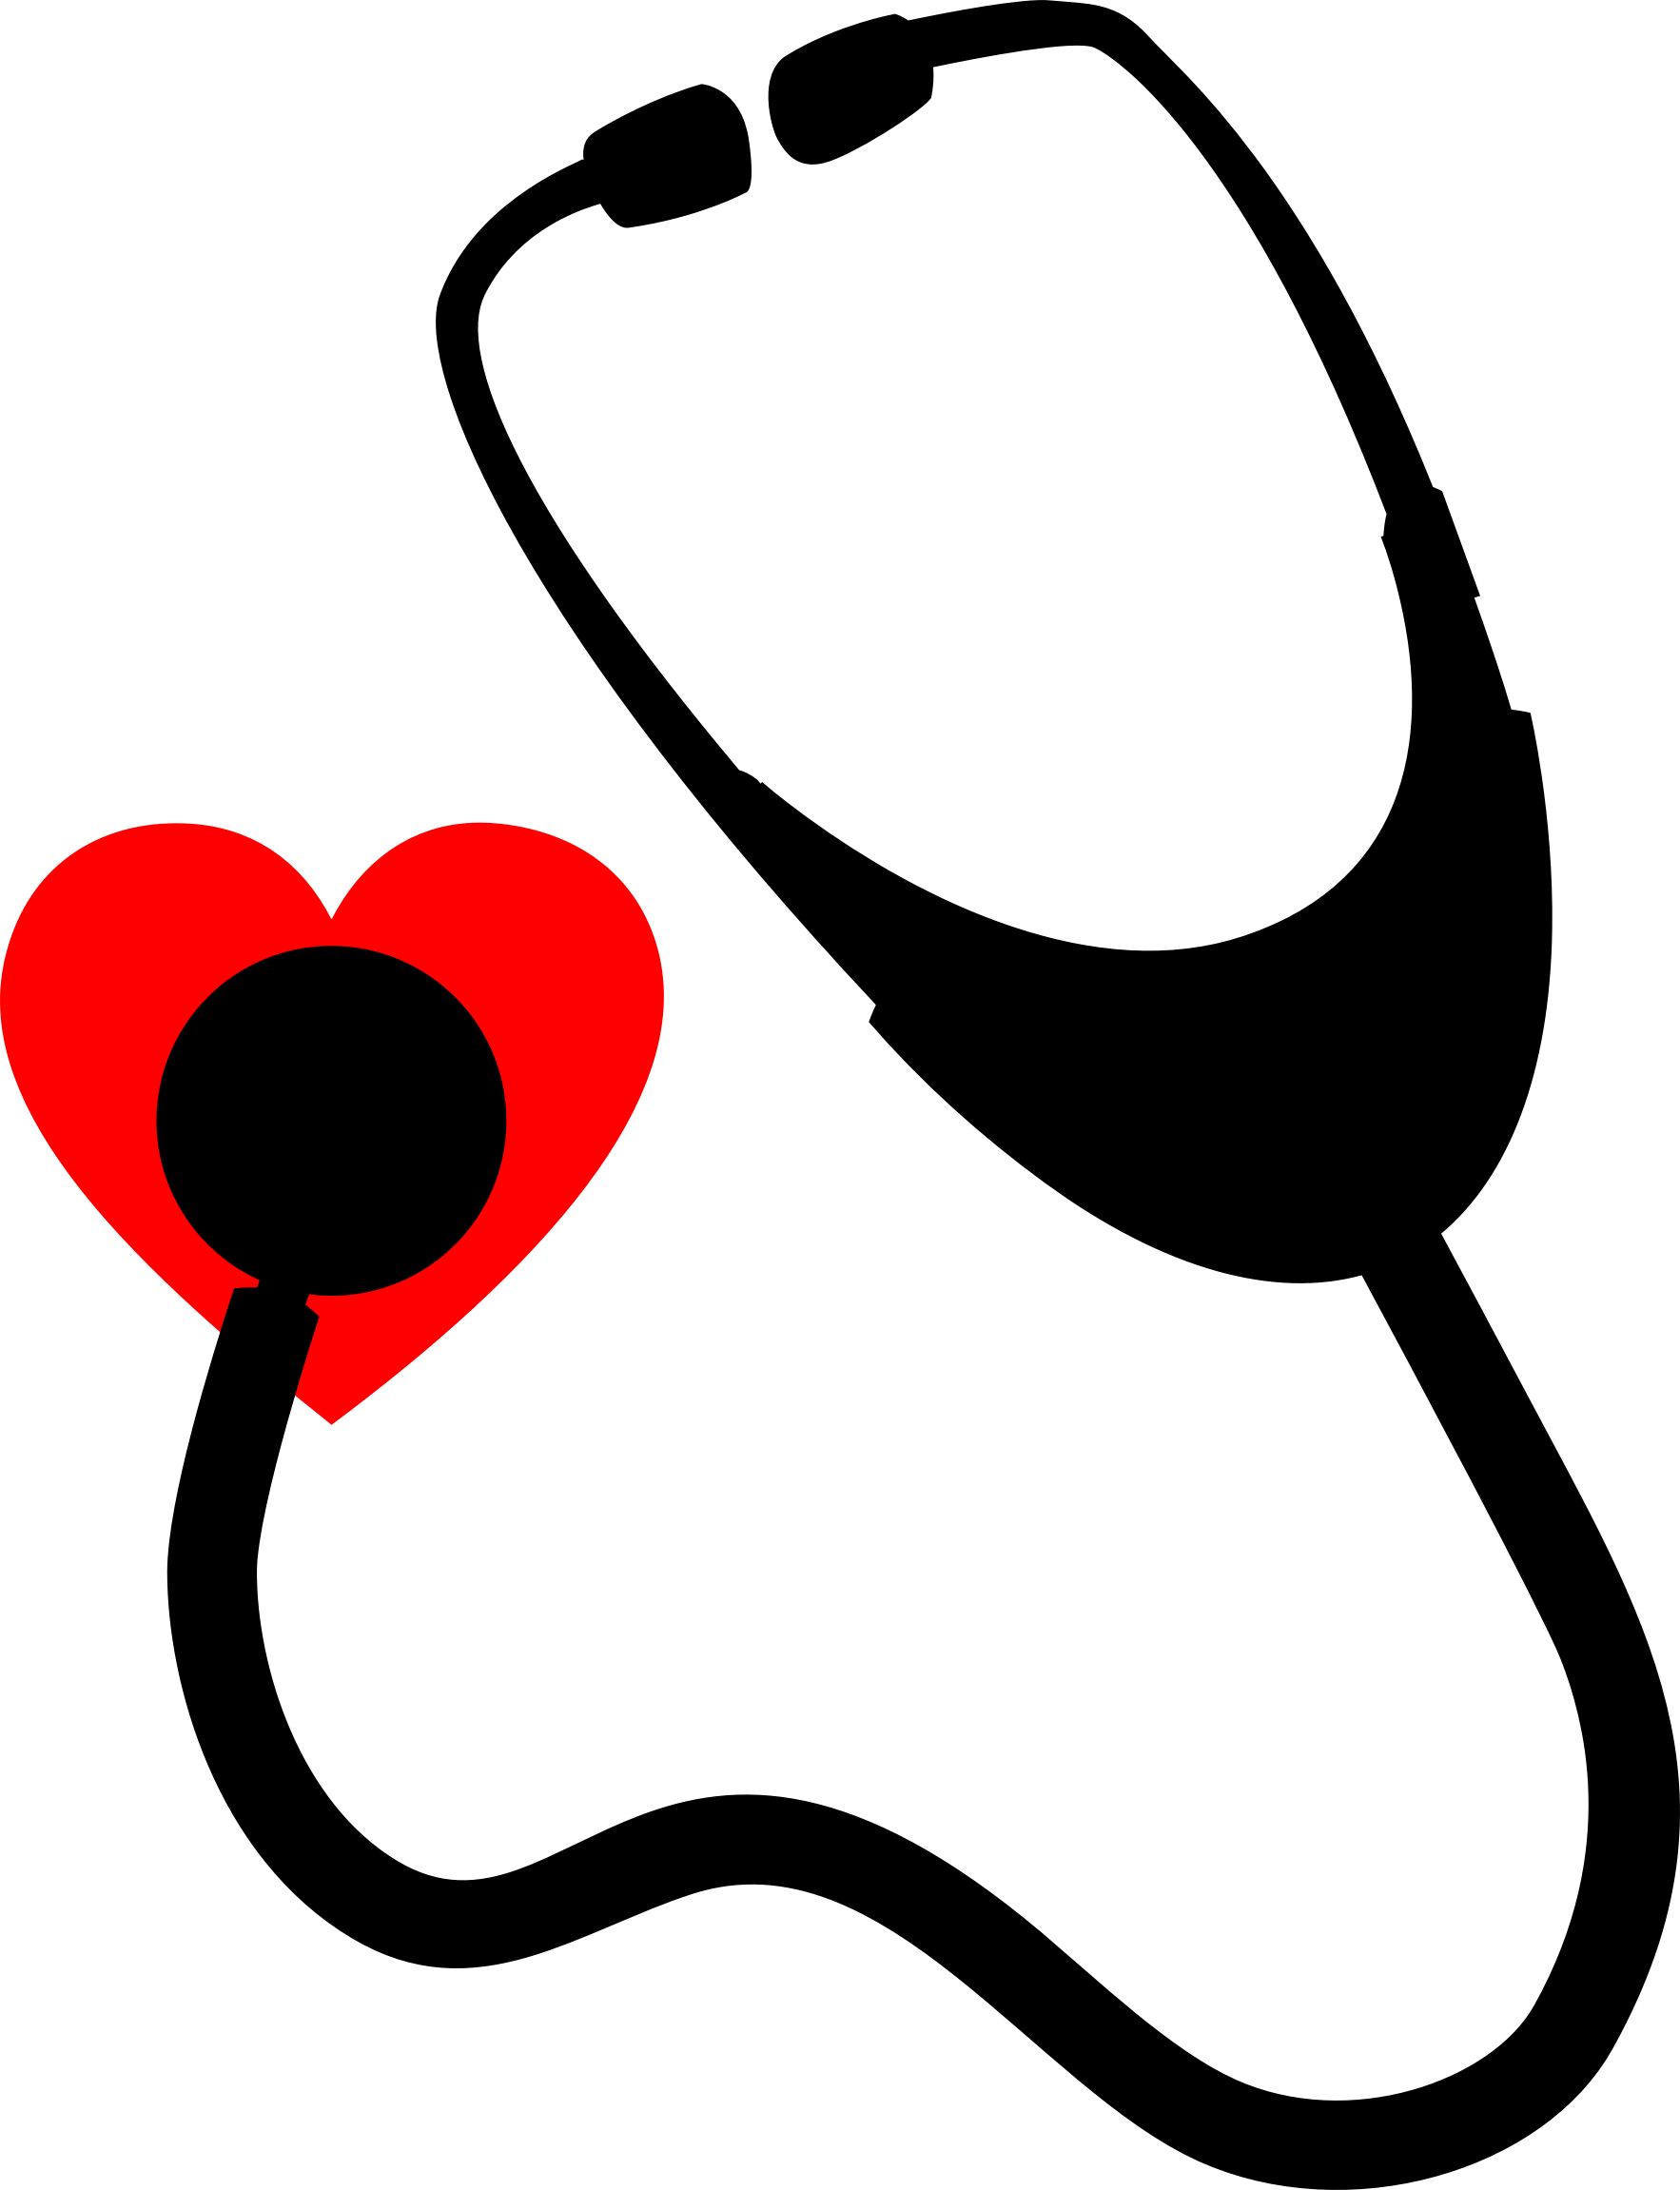 Stethoscope heart png. Icons free and downloads